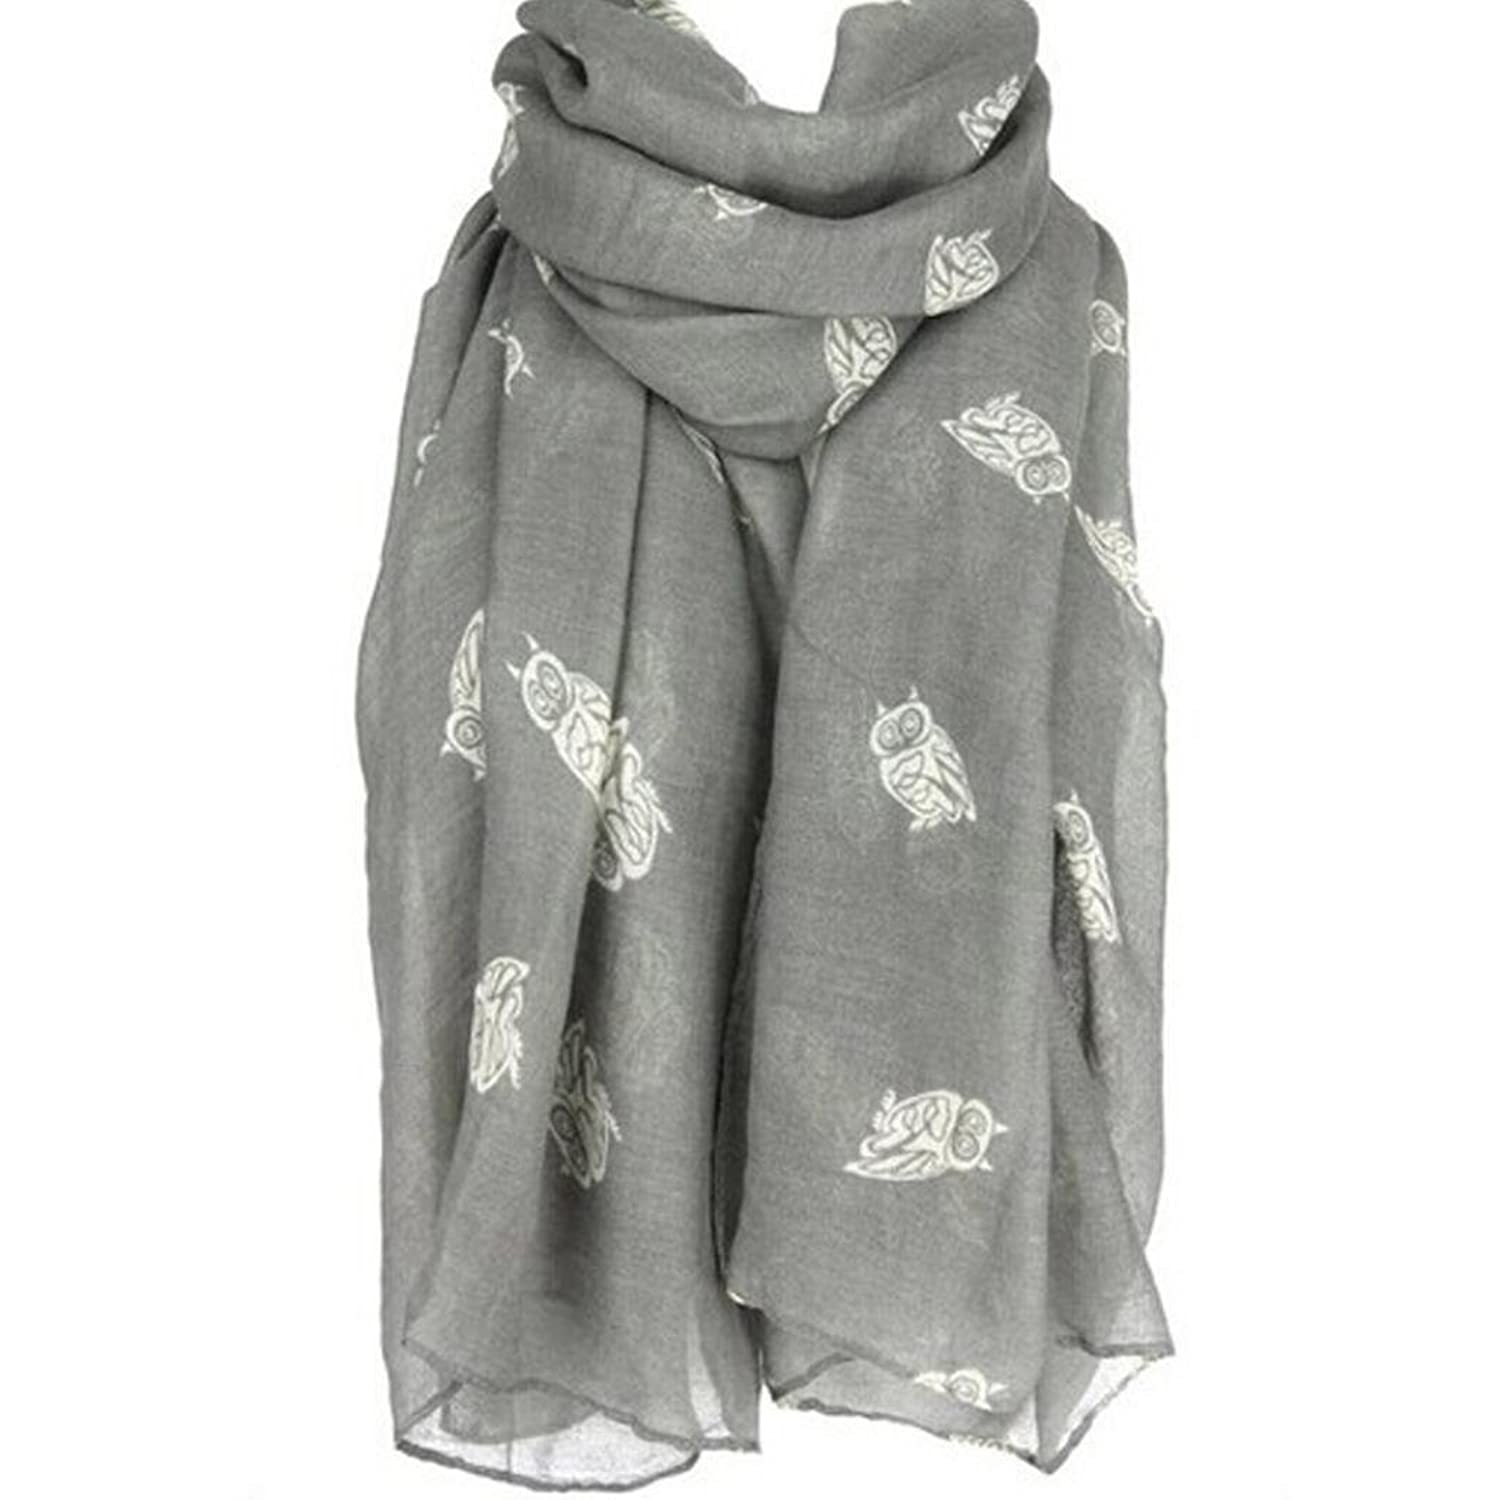 Owl Print Scarf, Perman Girl Women Ladies Long Cute Voile Warm Soft Wrap Shawl